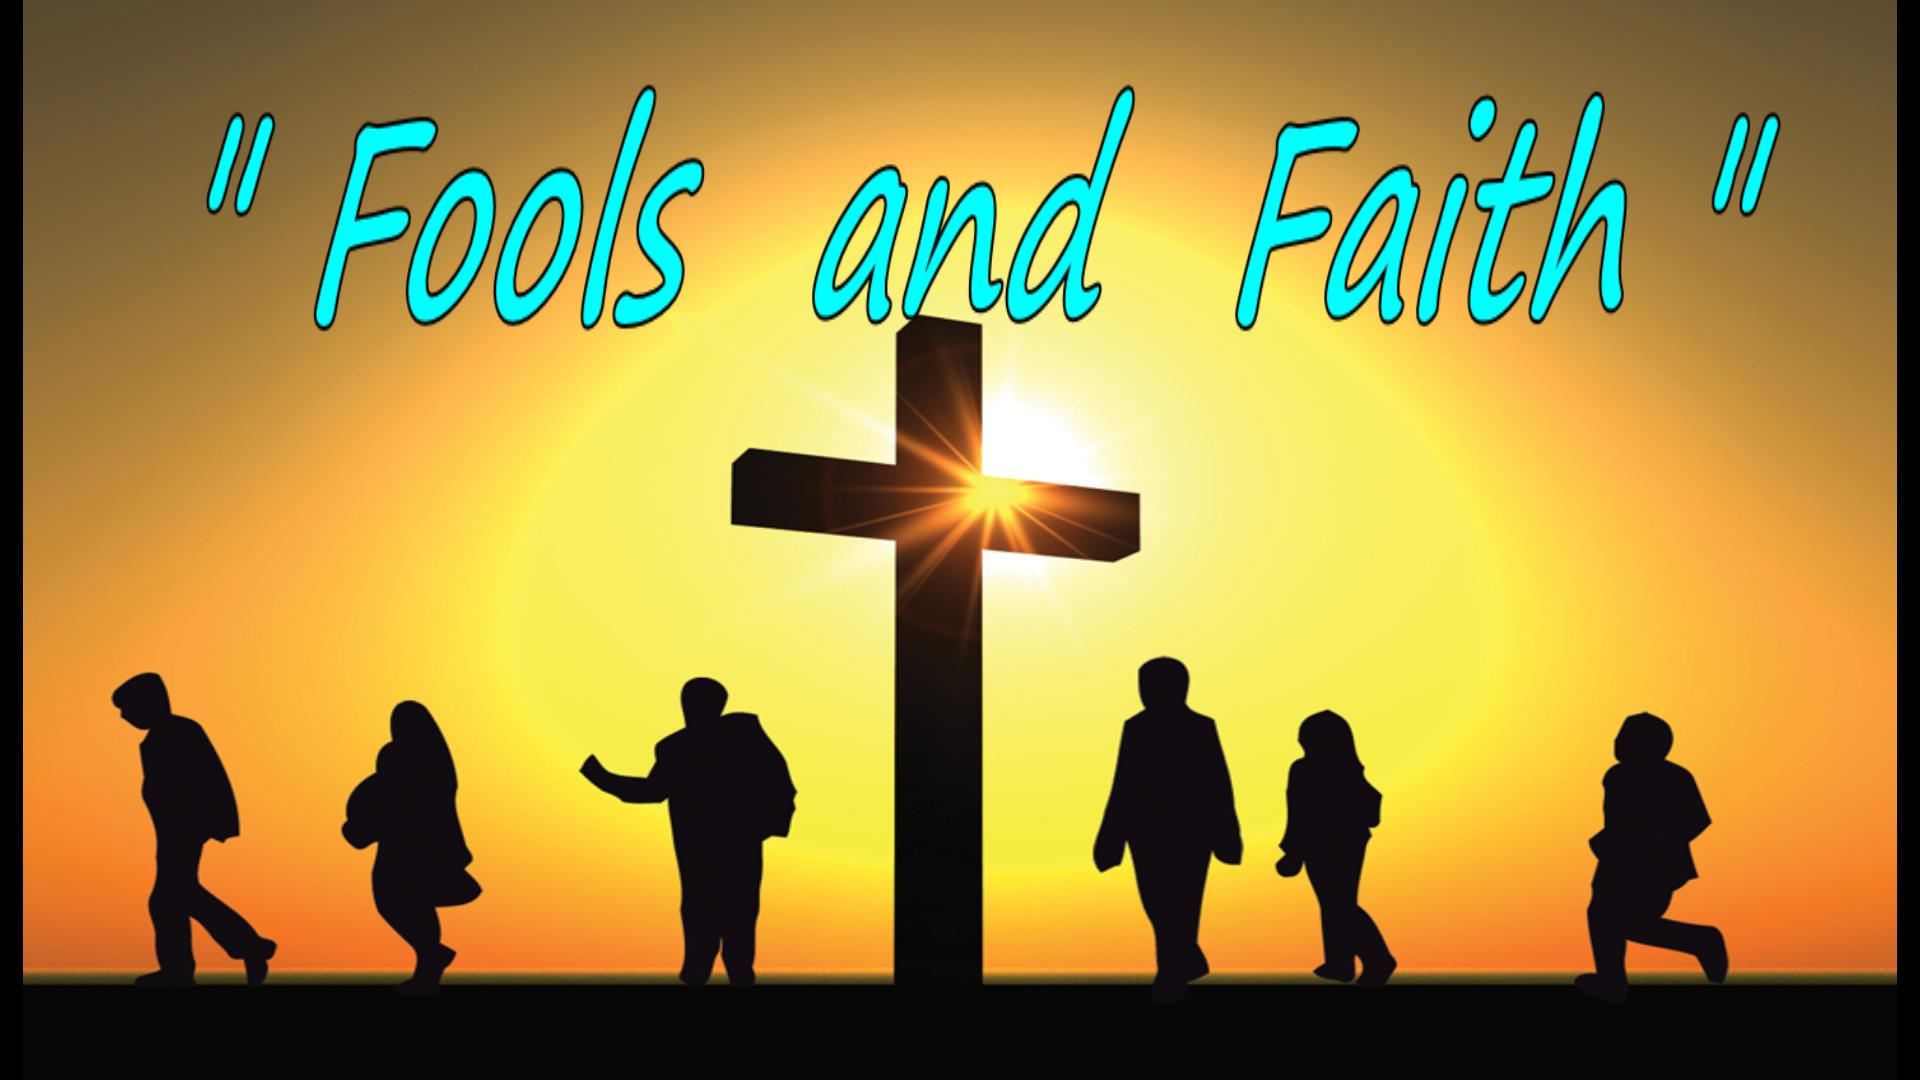 Fools and Faith